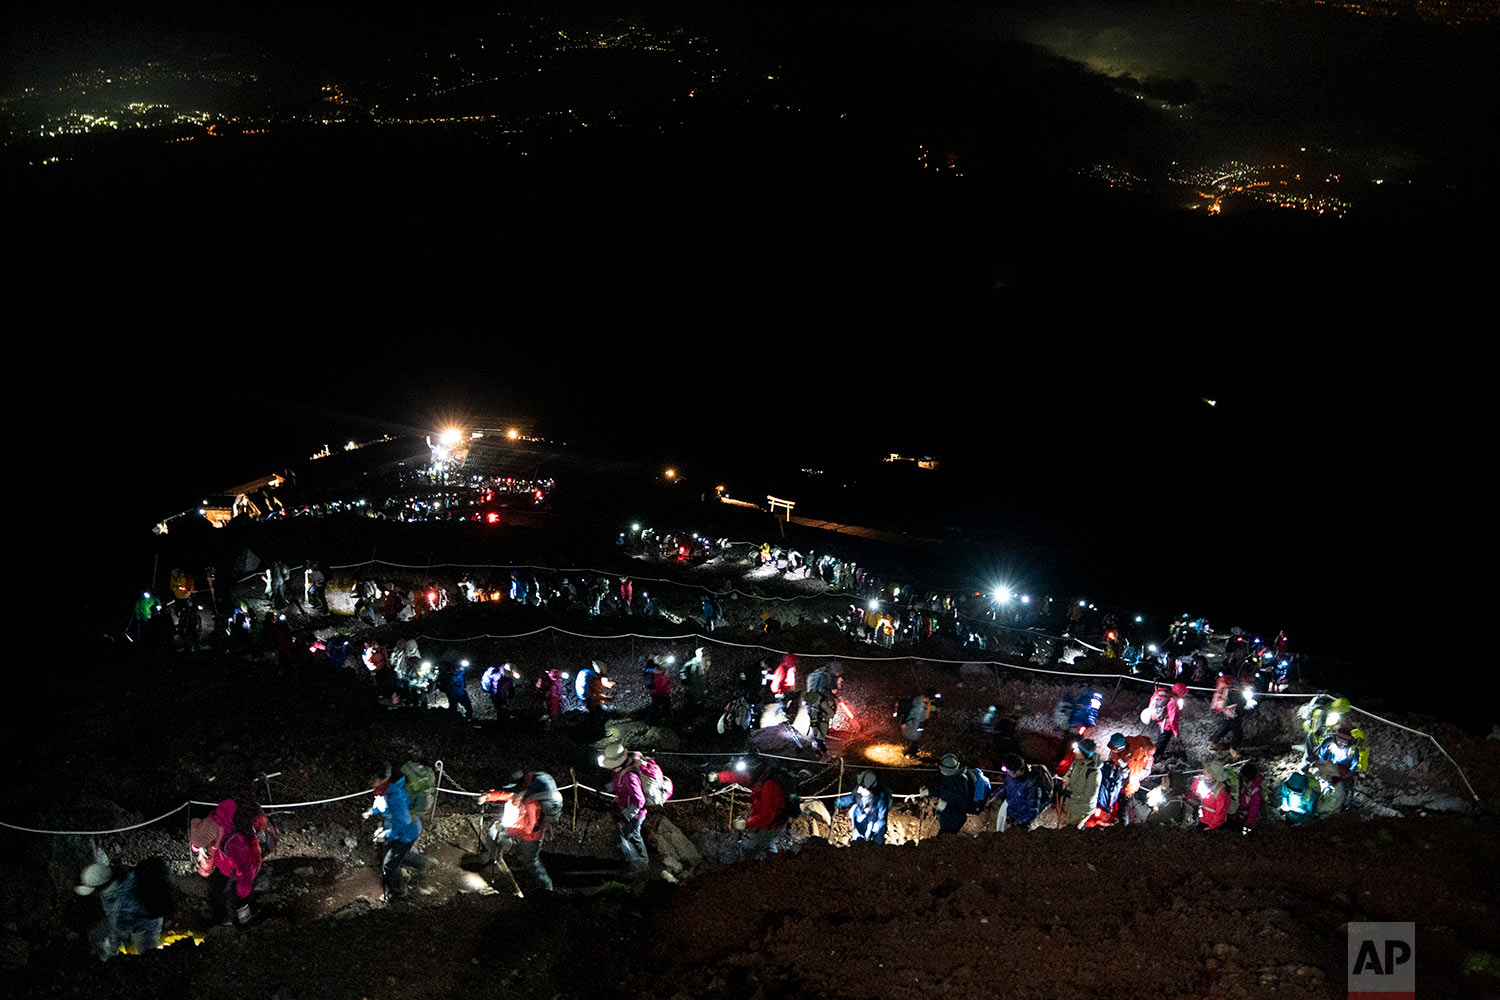 Hundreds of climbers wearing headlamps form a long line as they climb to the summit of Mount Fuji to watch the sunrise, Aug. 3, 2019, in Japan. (AP Photo/Jae C. Hong)